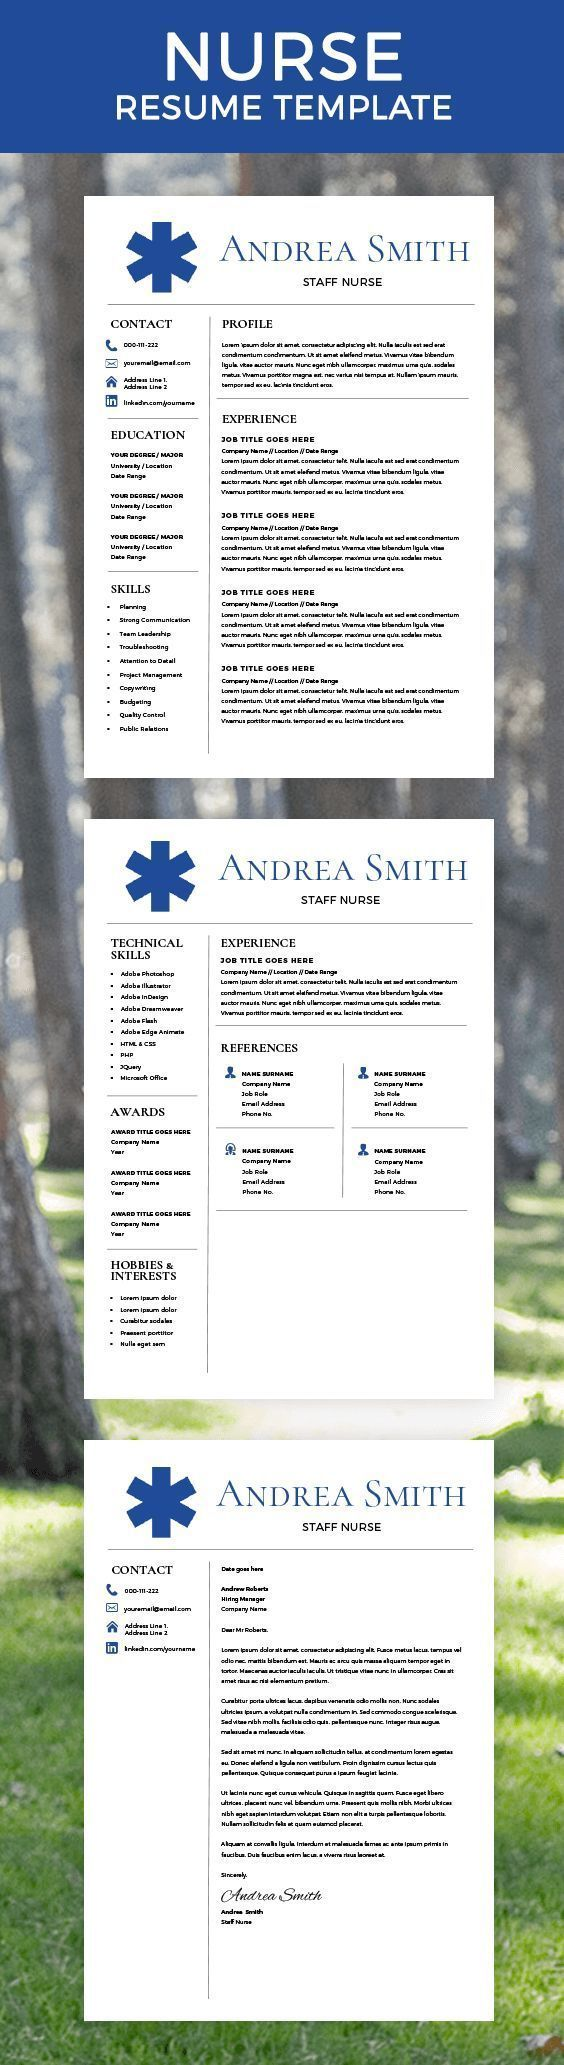 nurse resume template nurse staff top resume templates cv template free cover - Top Resume Templates Free